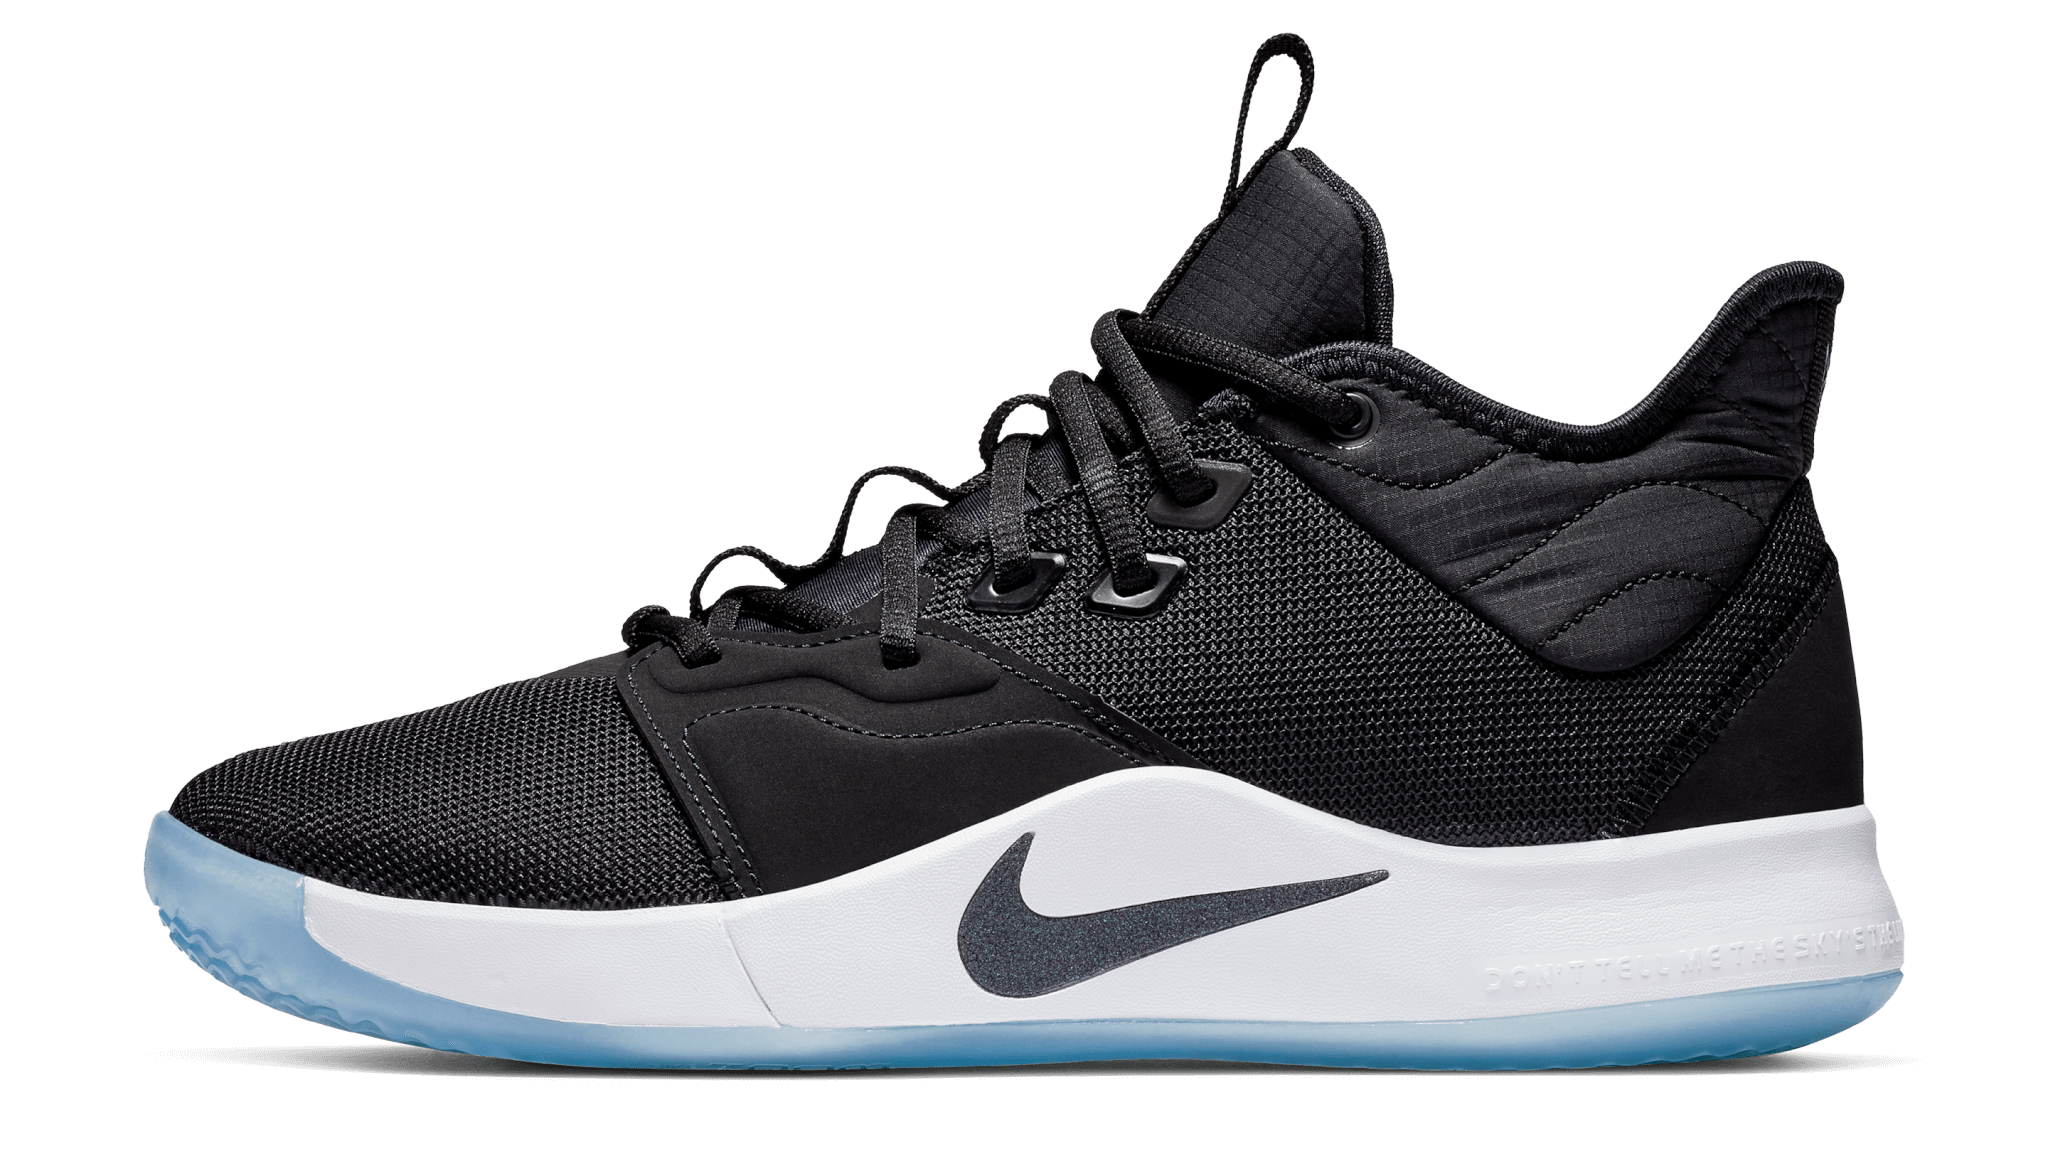 new styles ebe49 9f858 Nike PG 3 Review